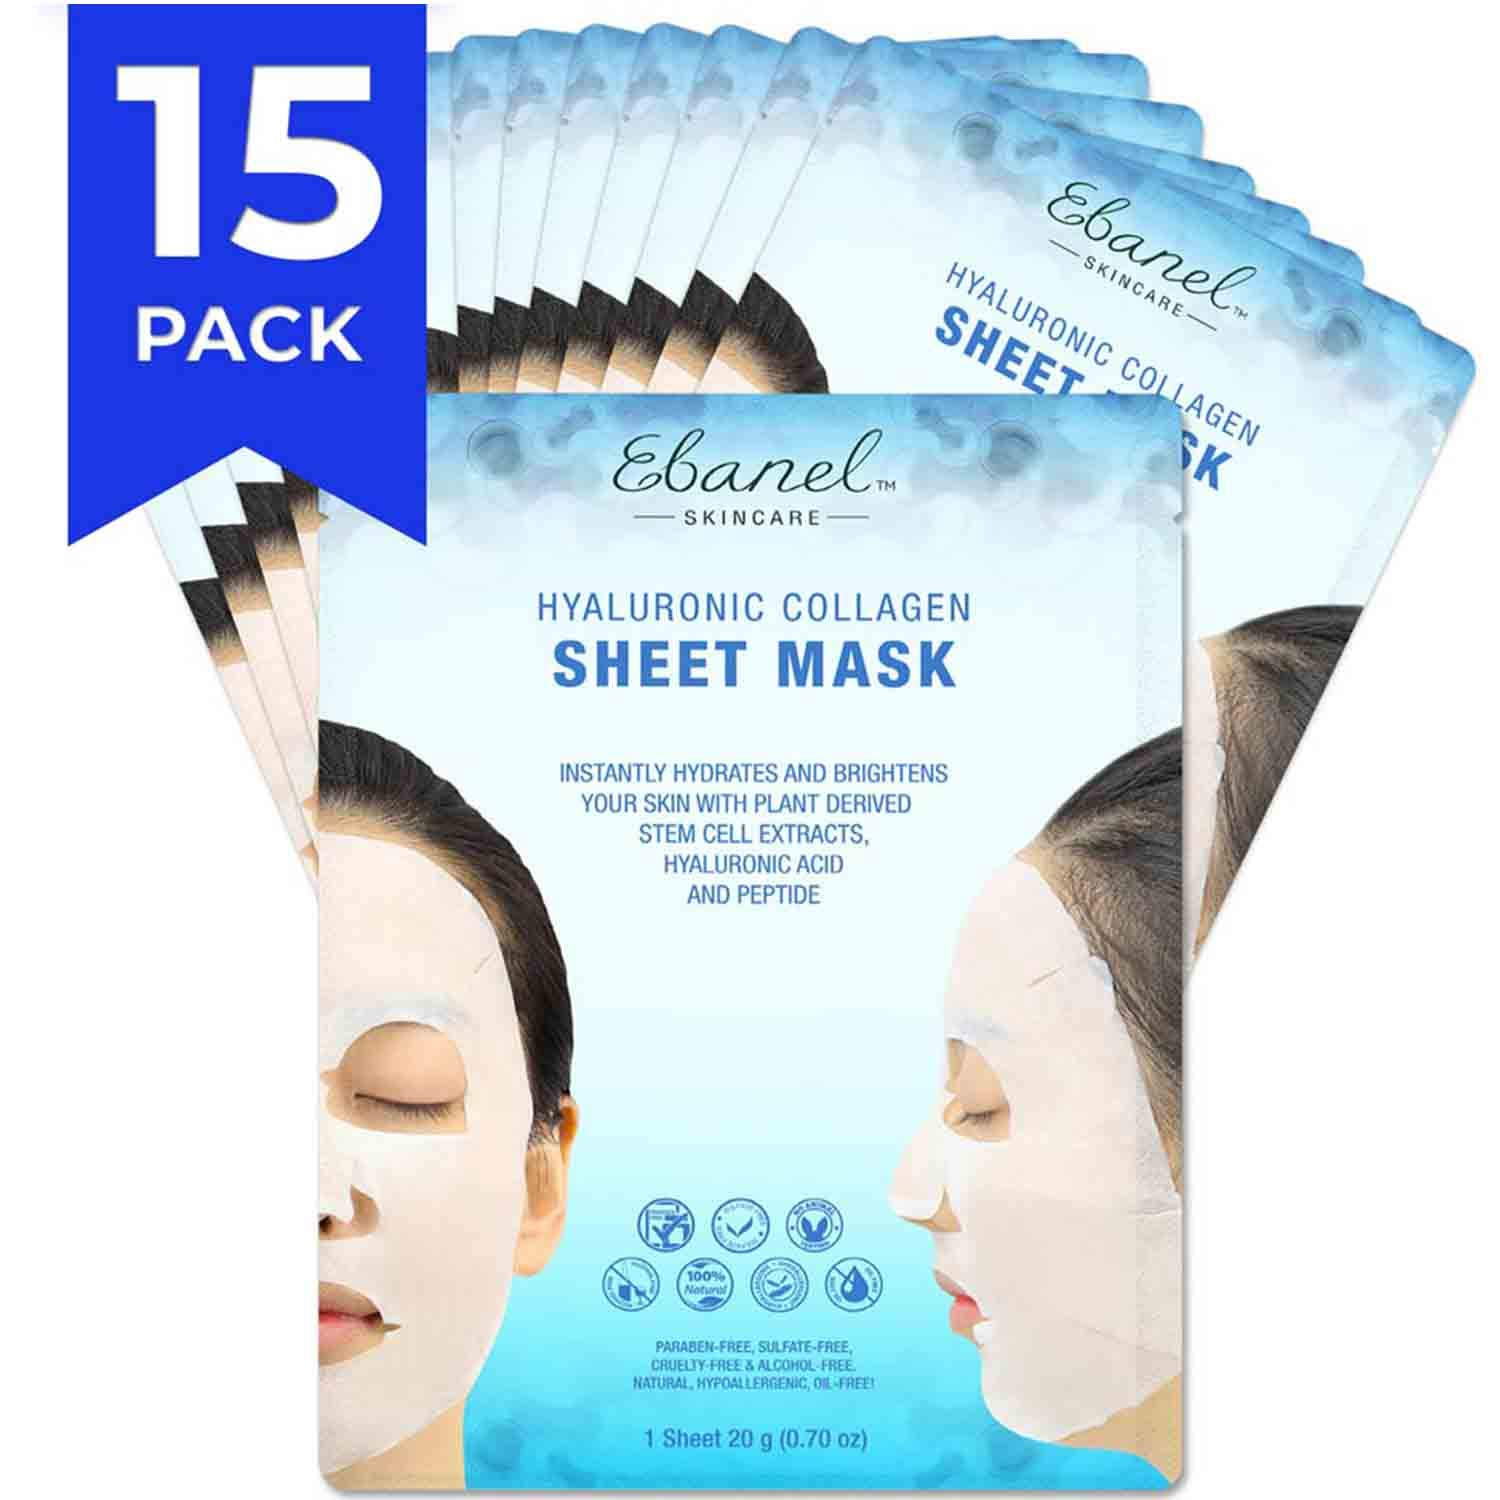 Ebanel Korean Collagen Facial Face Mask Sheet, 15 Pack, Instant Brightening and Hydrating, Deep Moisturizing with Hyaluronic Acid Face Masks, Anti-Aging Anti-Wrinkle with Stem Cell Extracts, Peptide